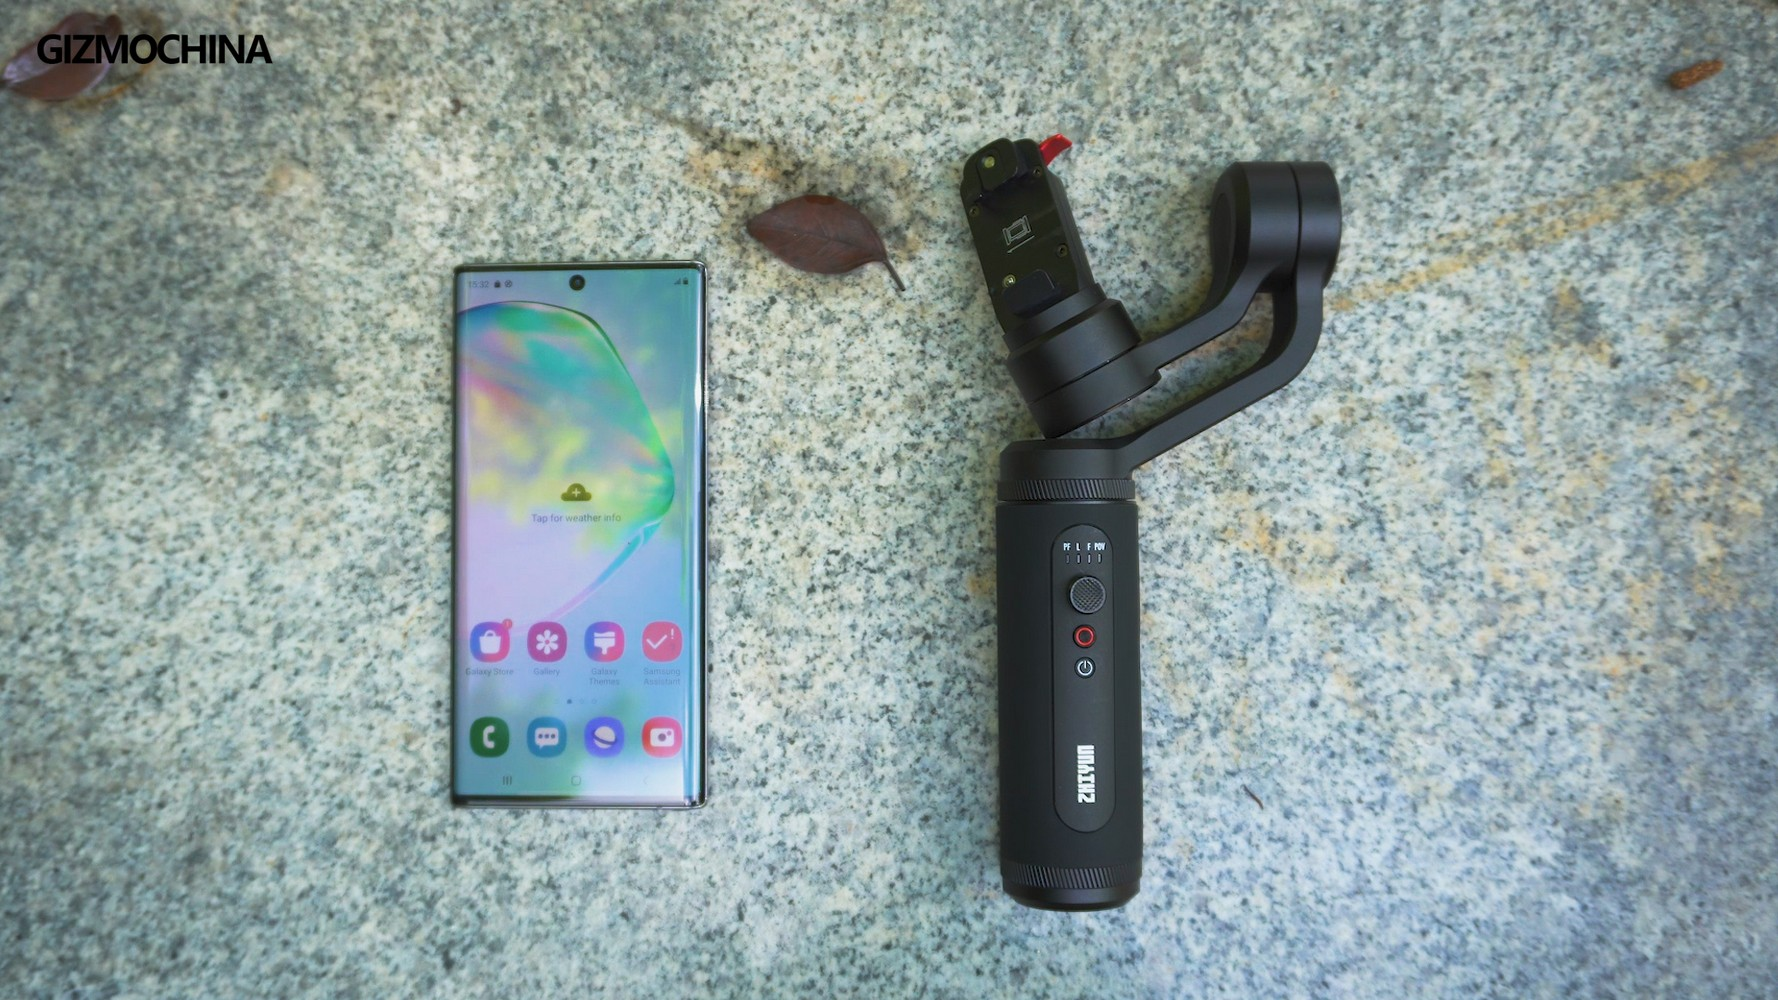 Image result for zhiyun smooth Q2 - HD Images shopping